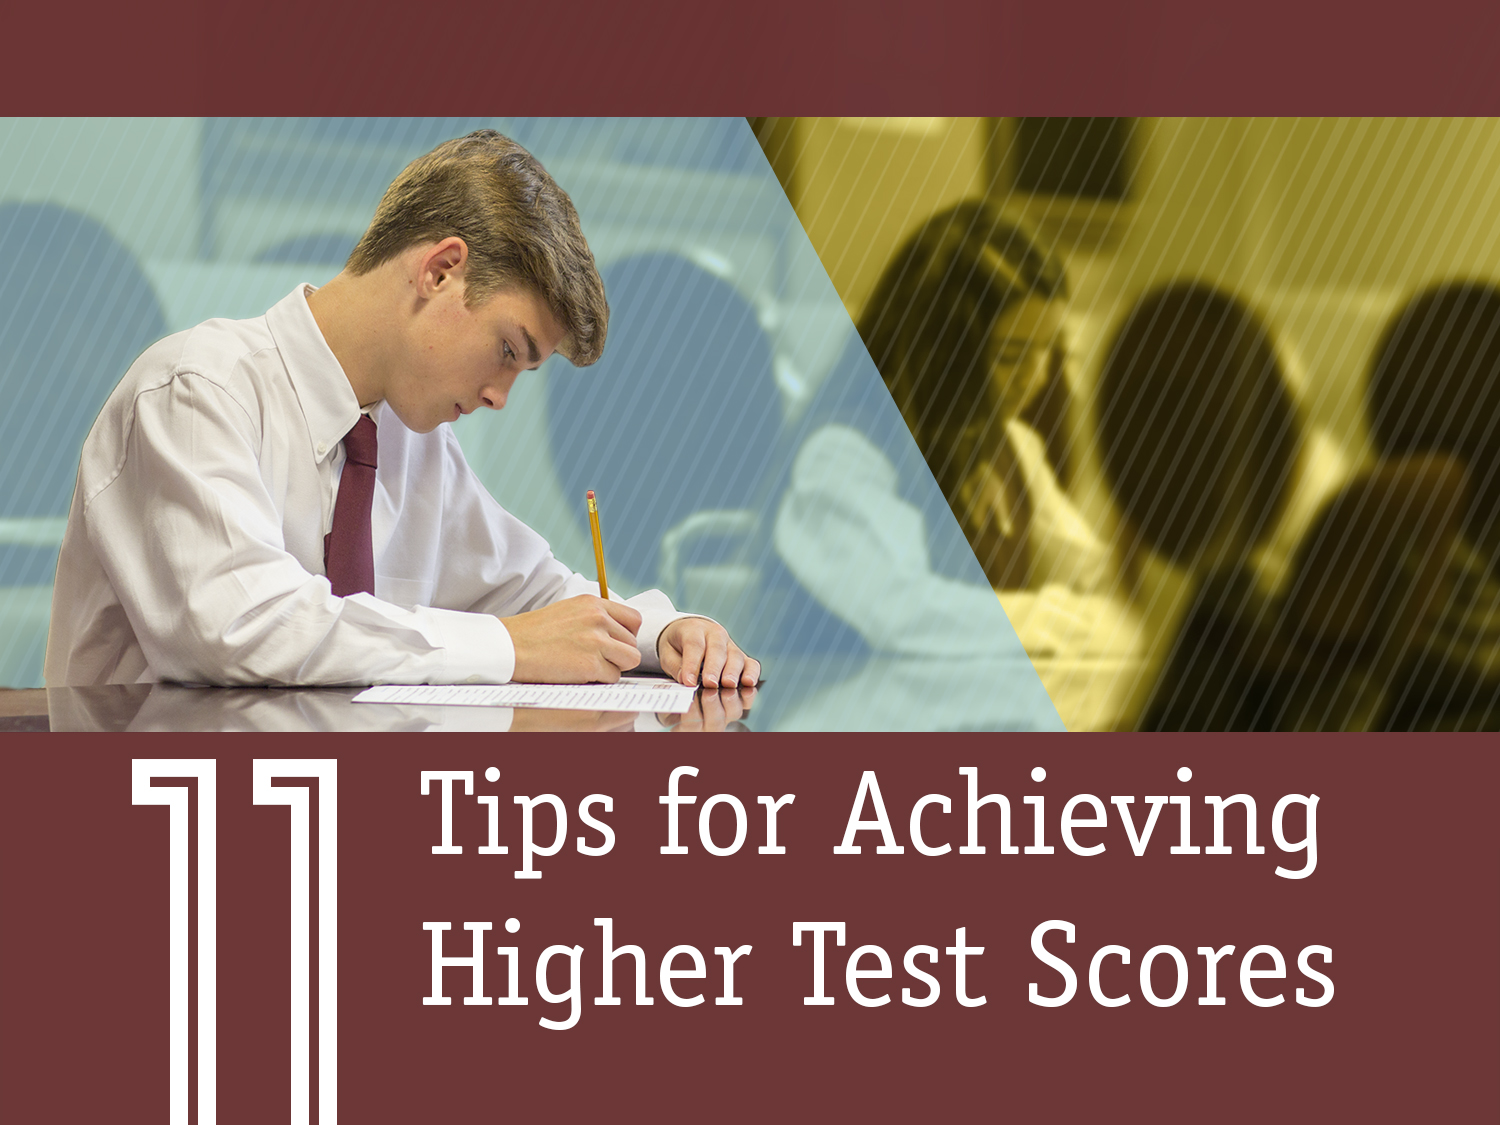 Achieving Higher Test Scores